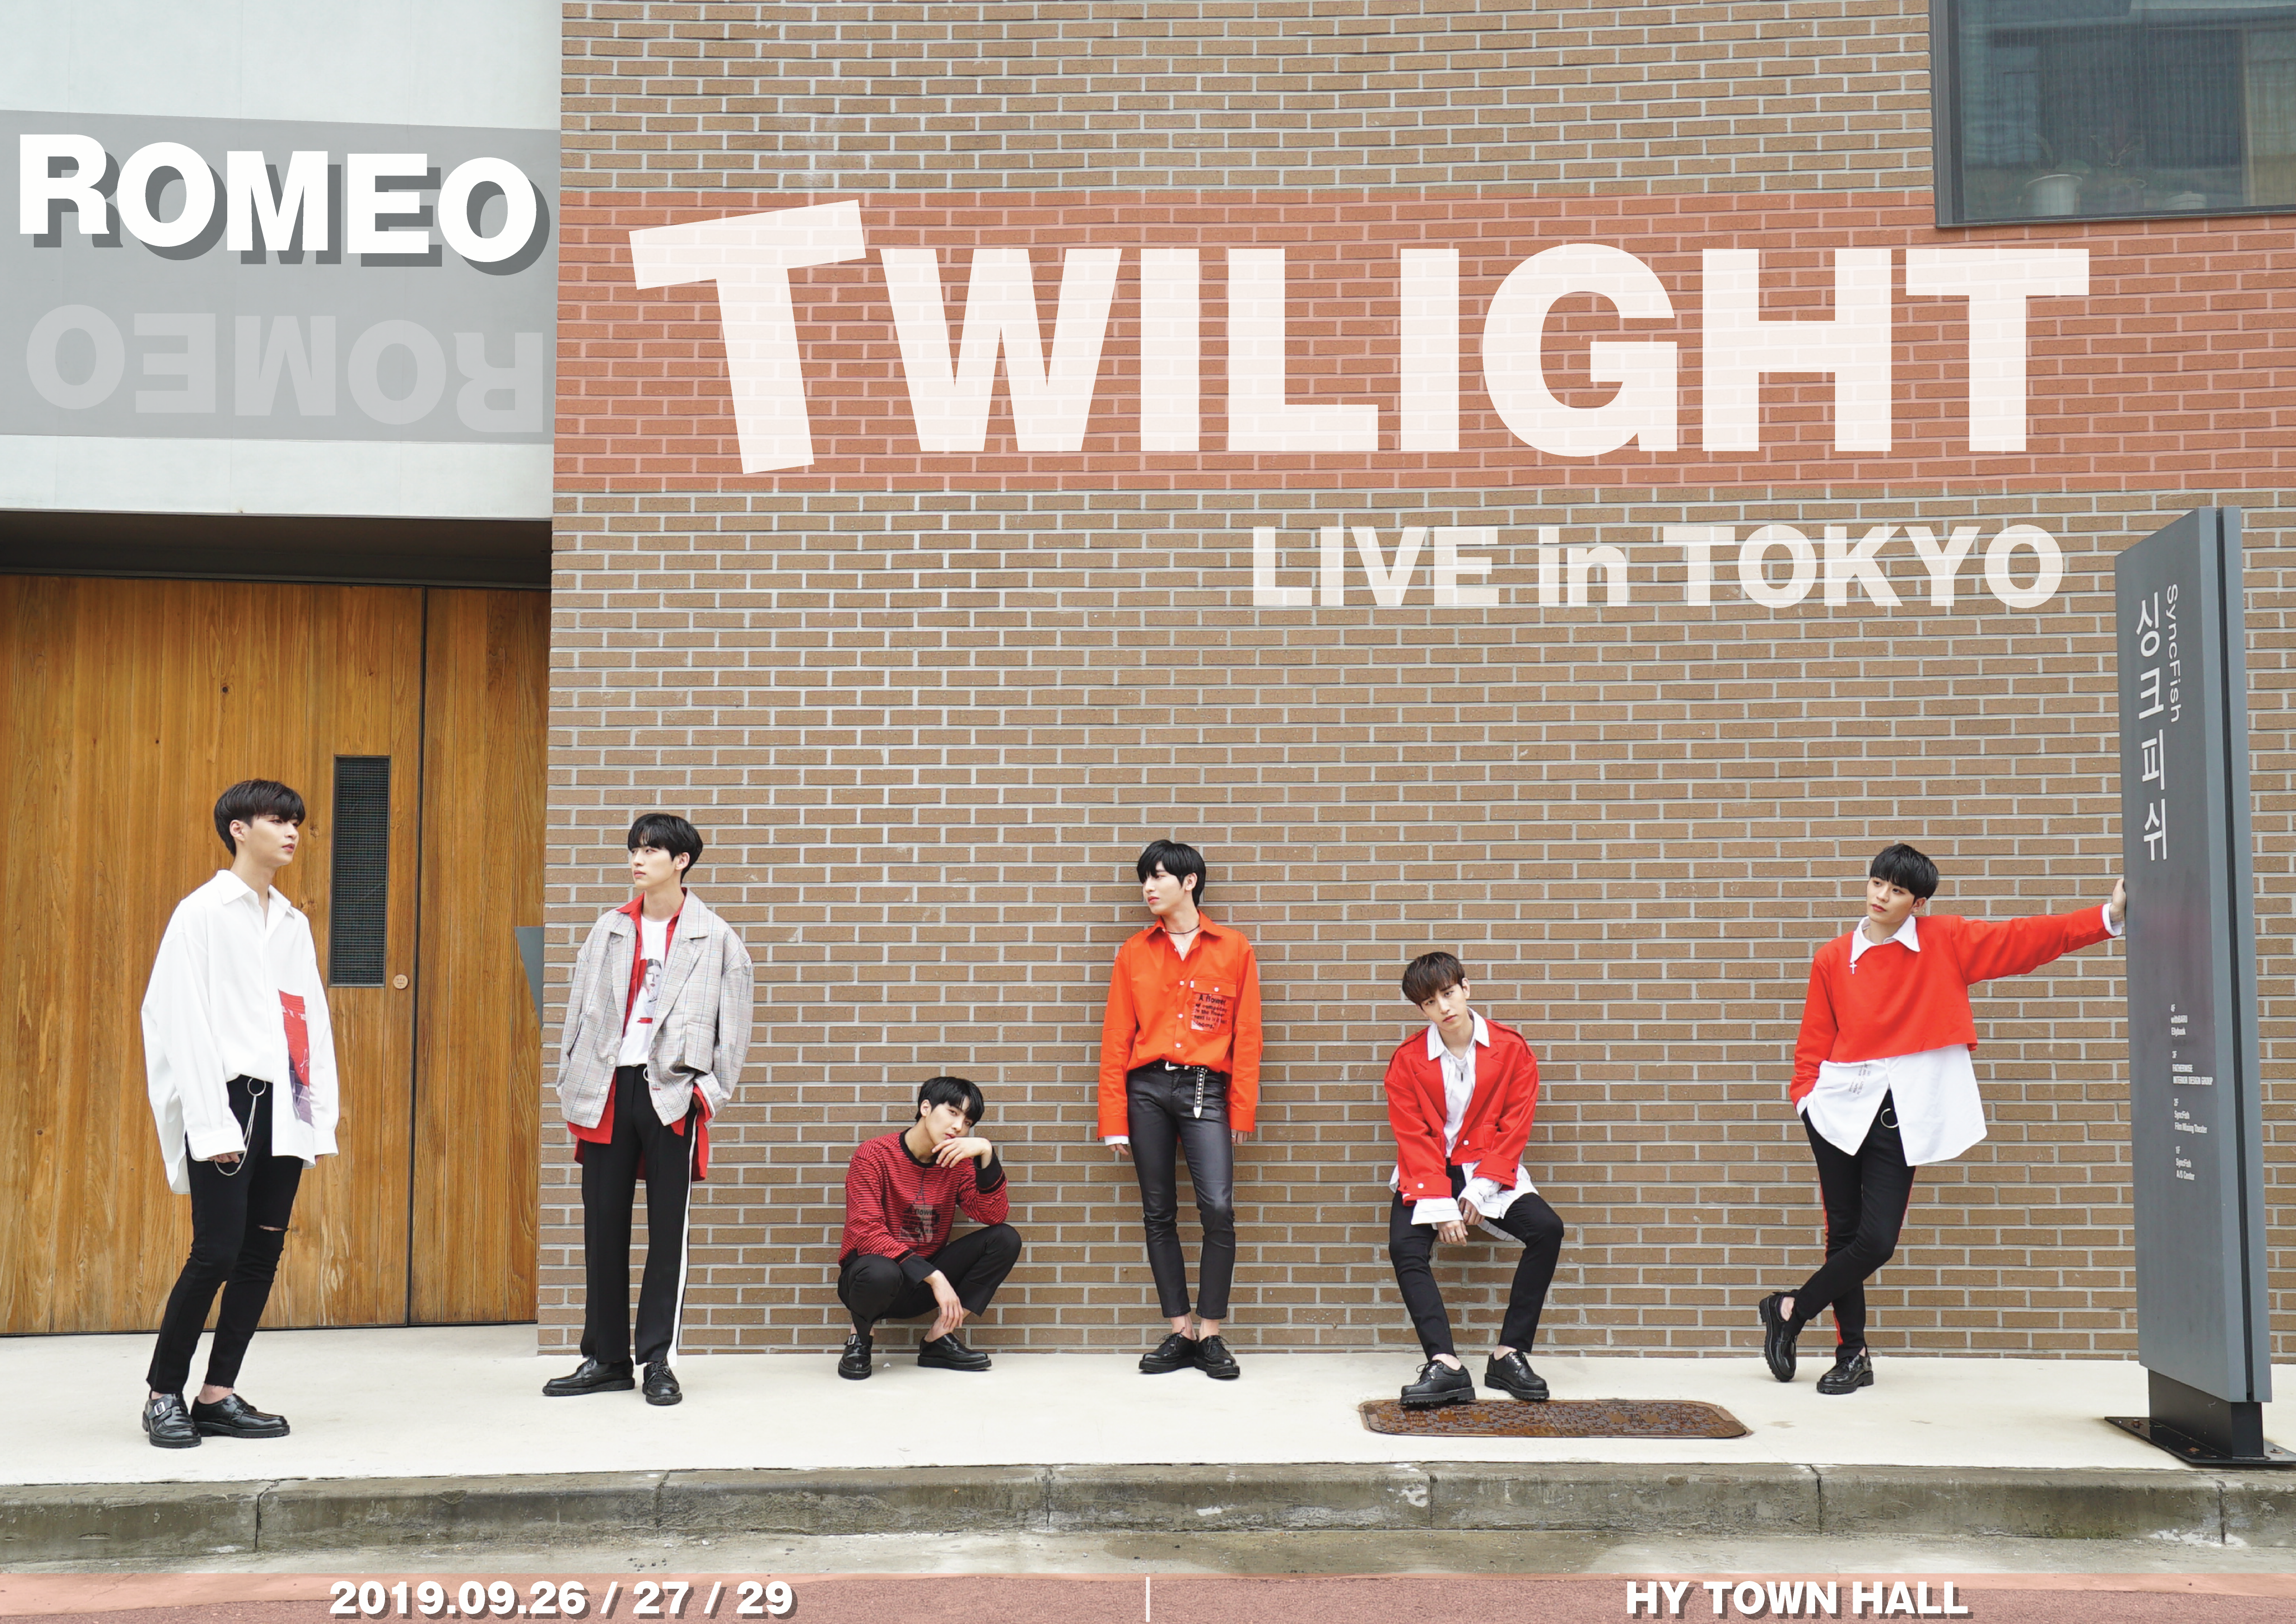 「ROMEO AUTUMN Live 2019 – TWILIGHT –」